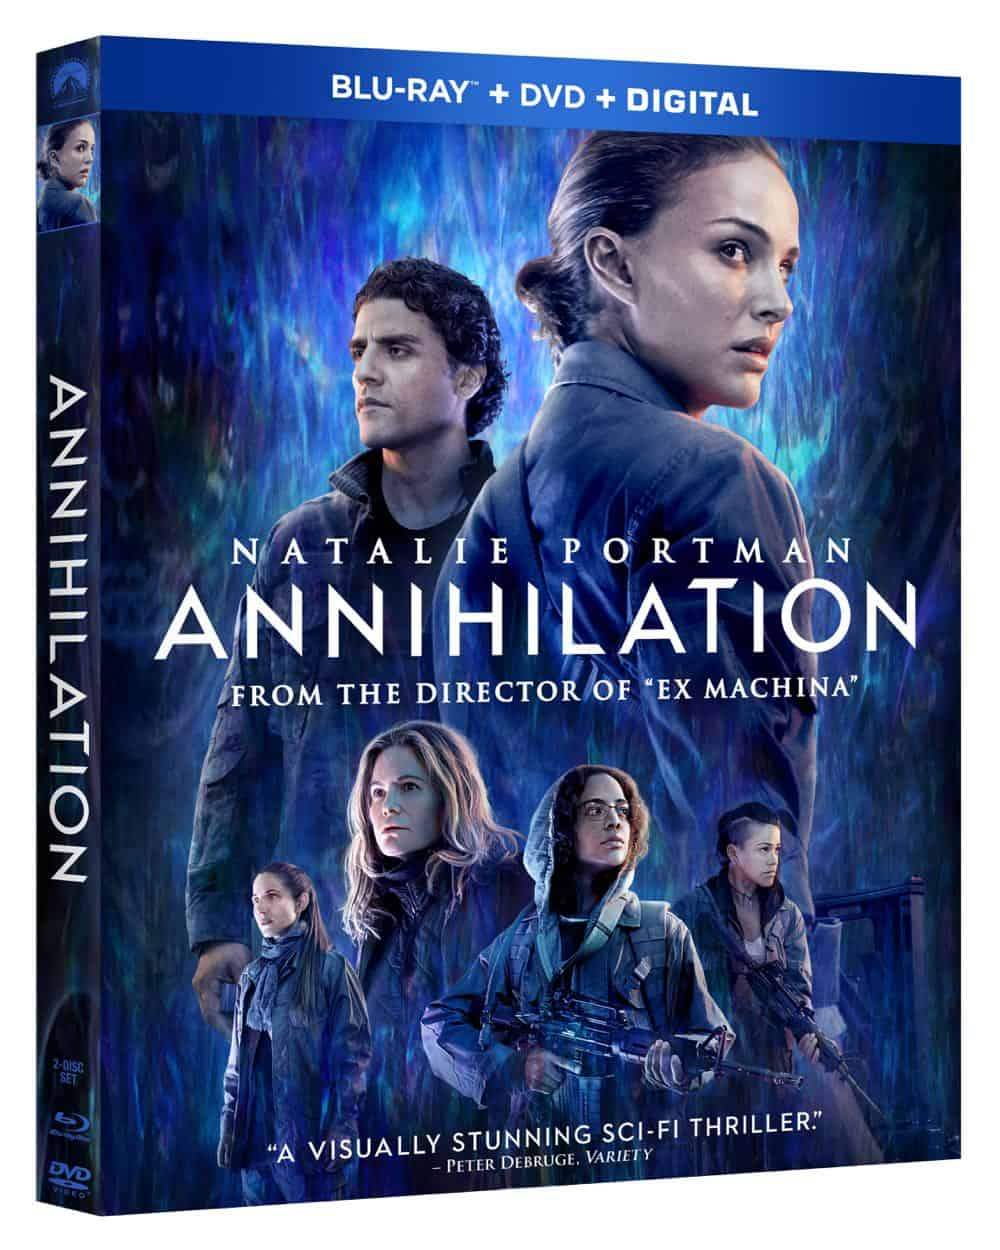 ANNIHILATION Blu-ray + DVD + Digital Cover